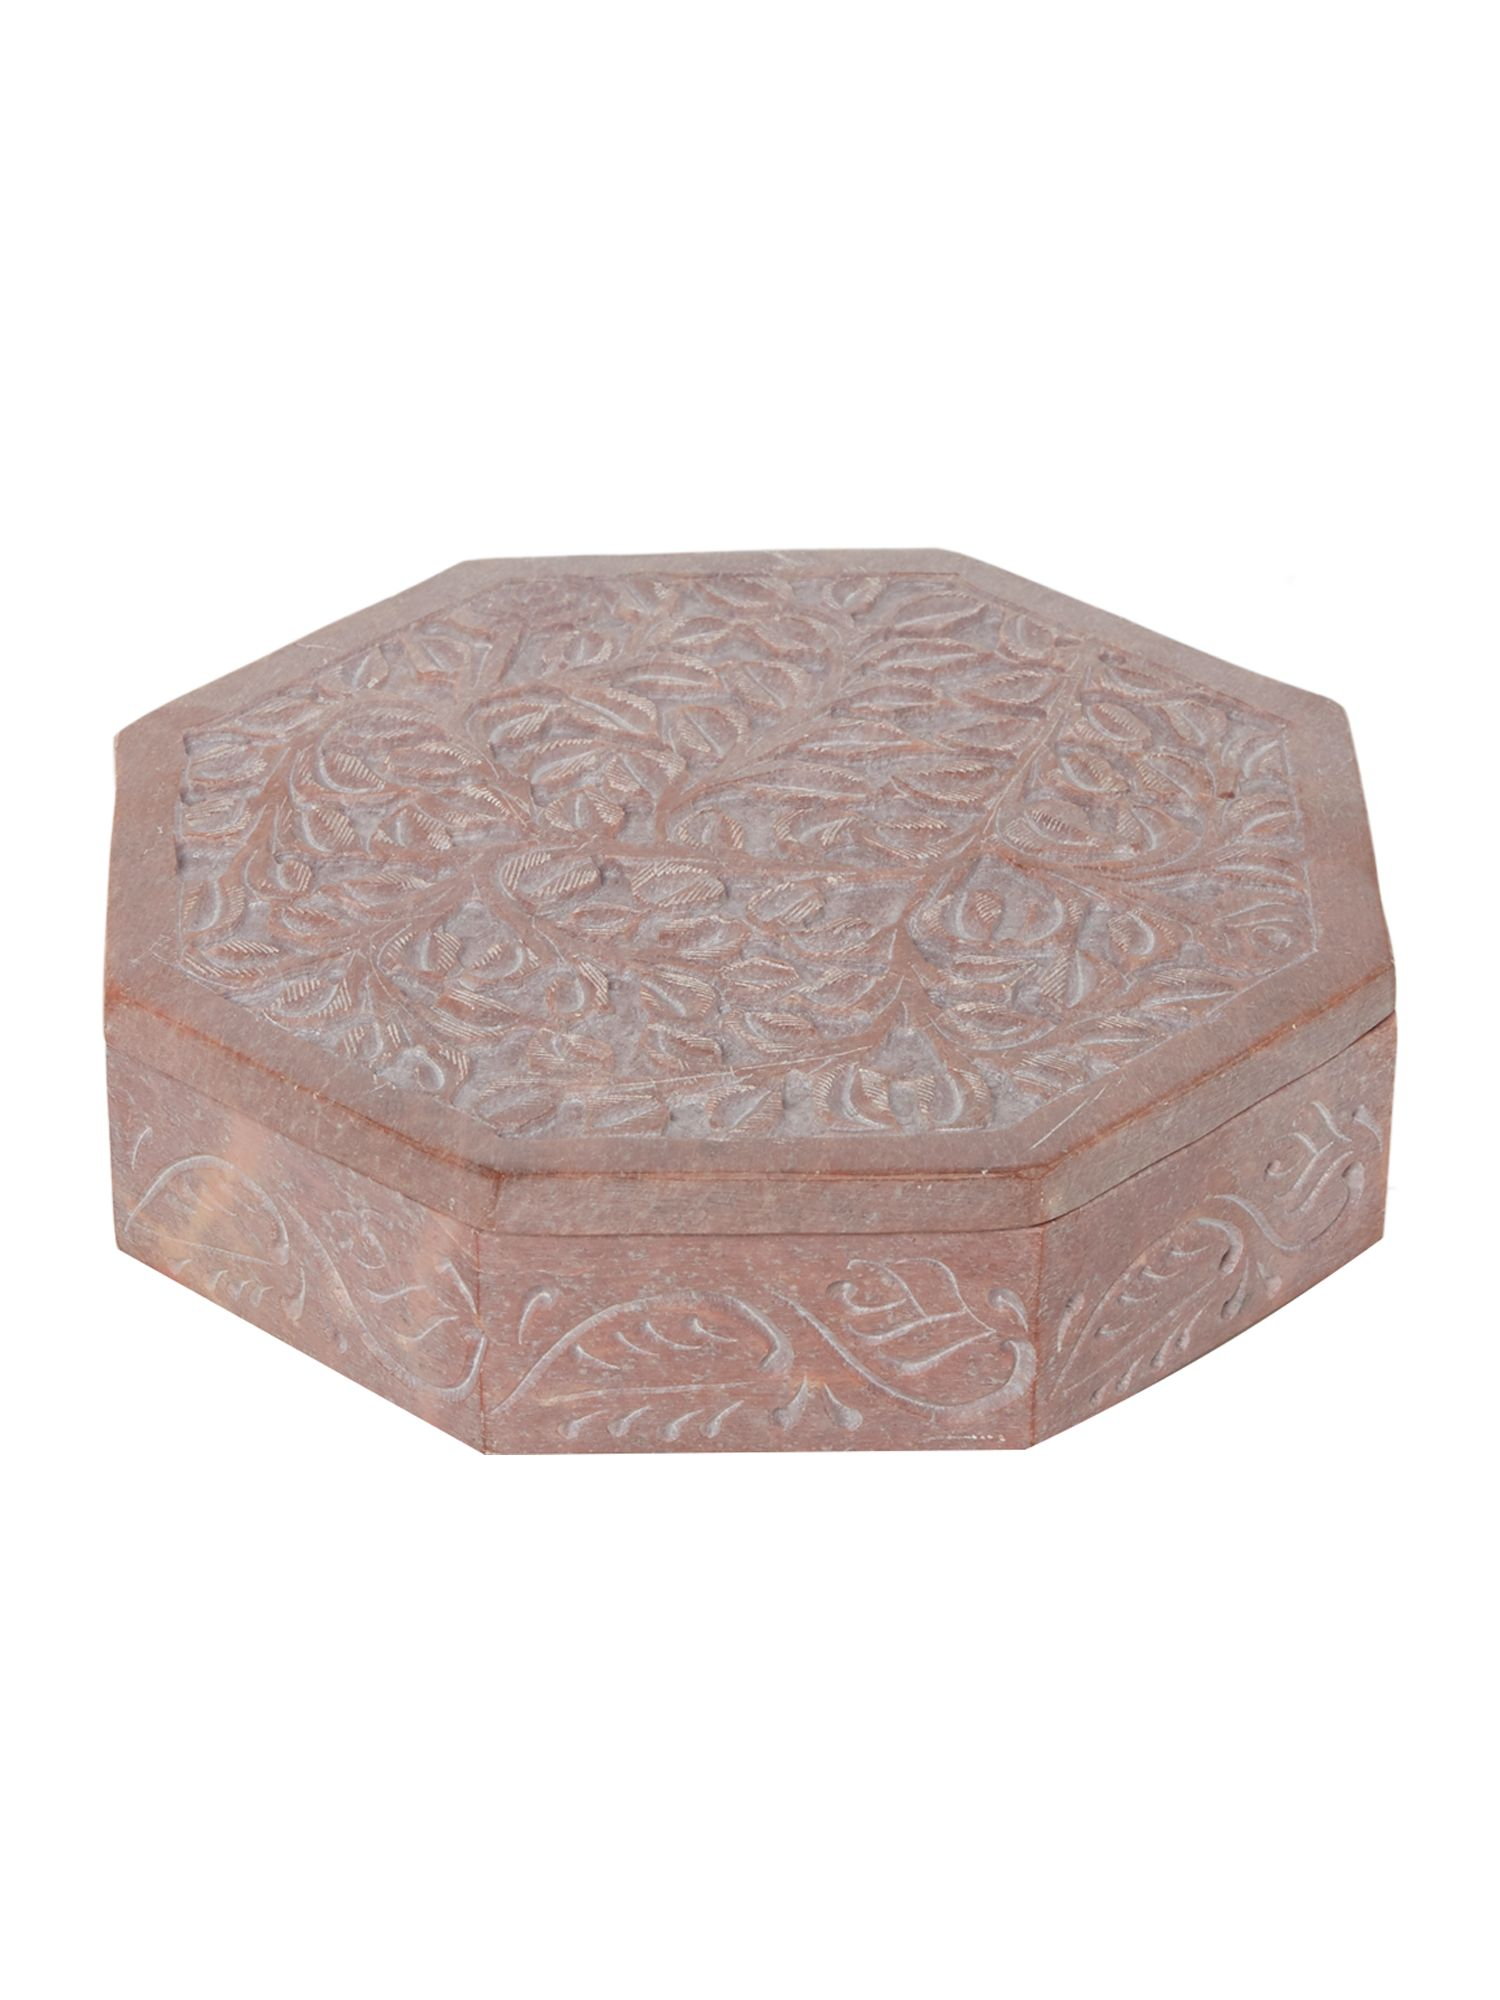 Junipa Hexagonal stone trinket box, N/A